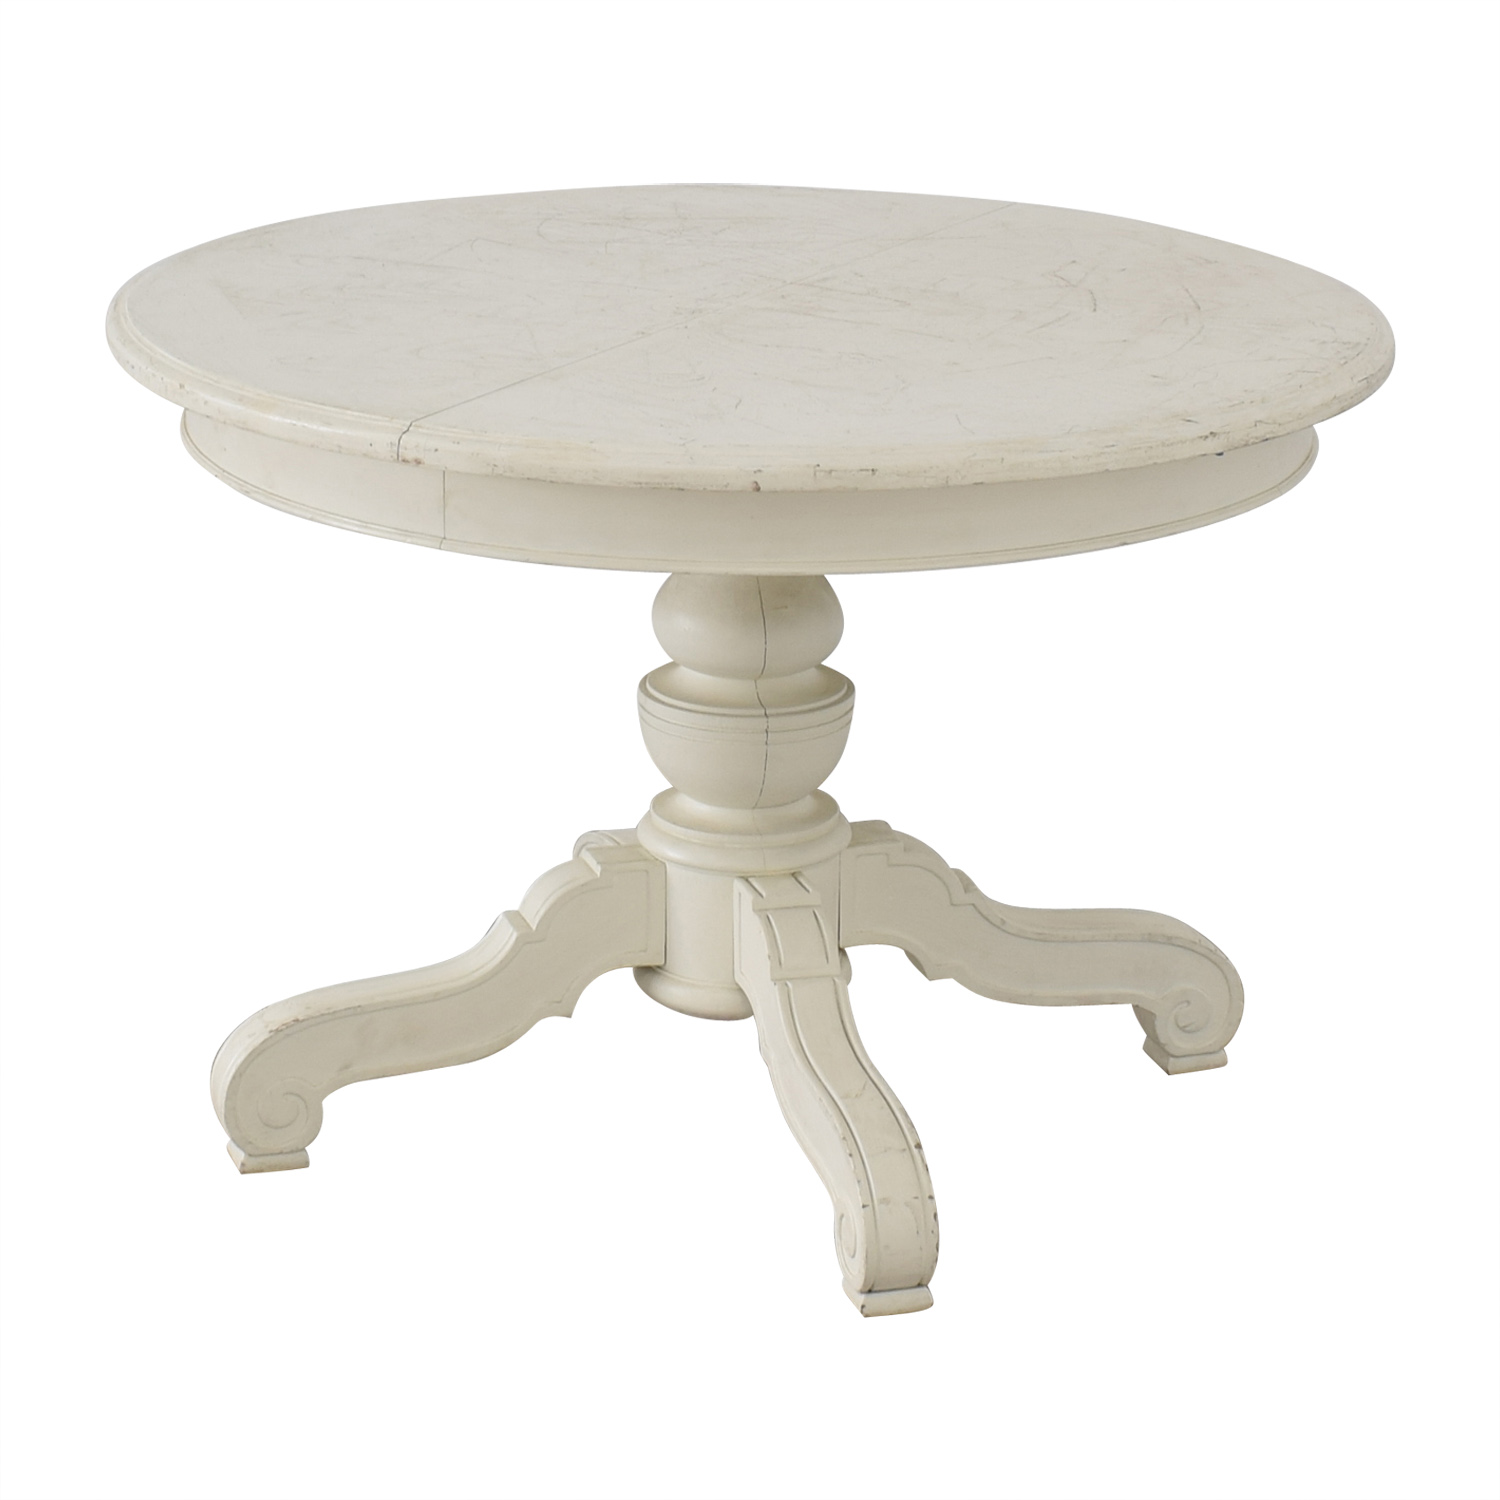 shop  Victorian Style Round White Pedestal Dining Table online